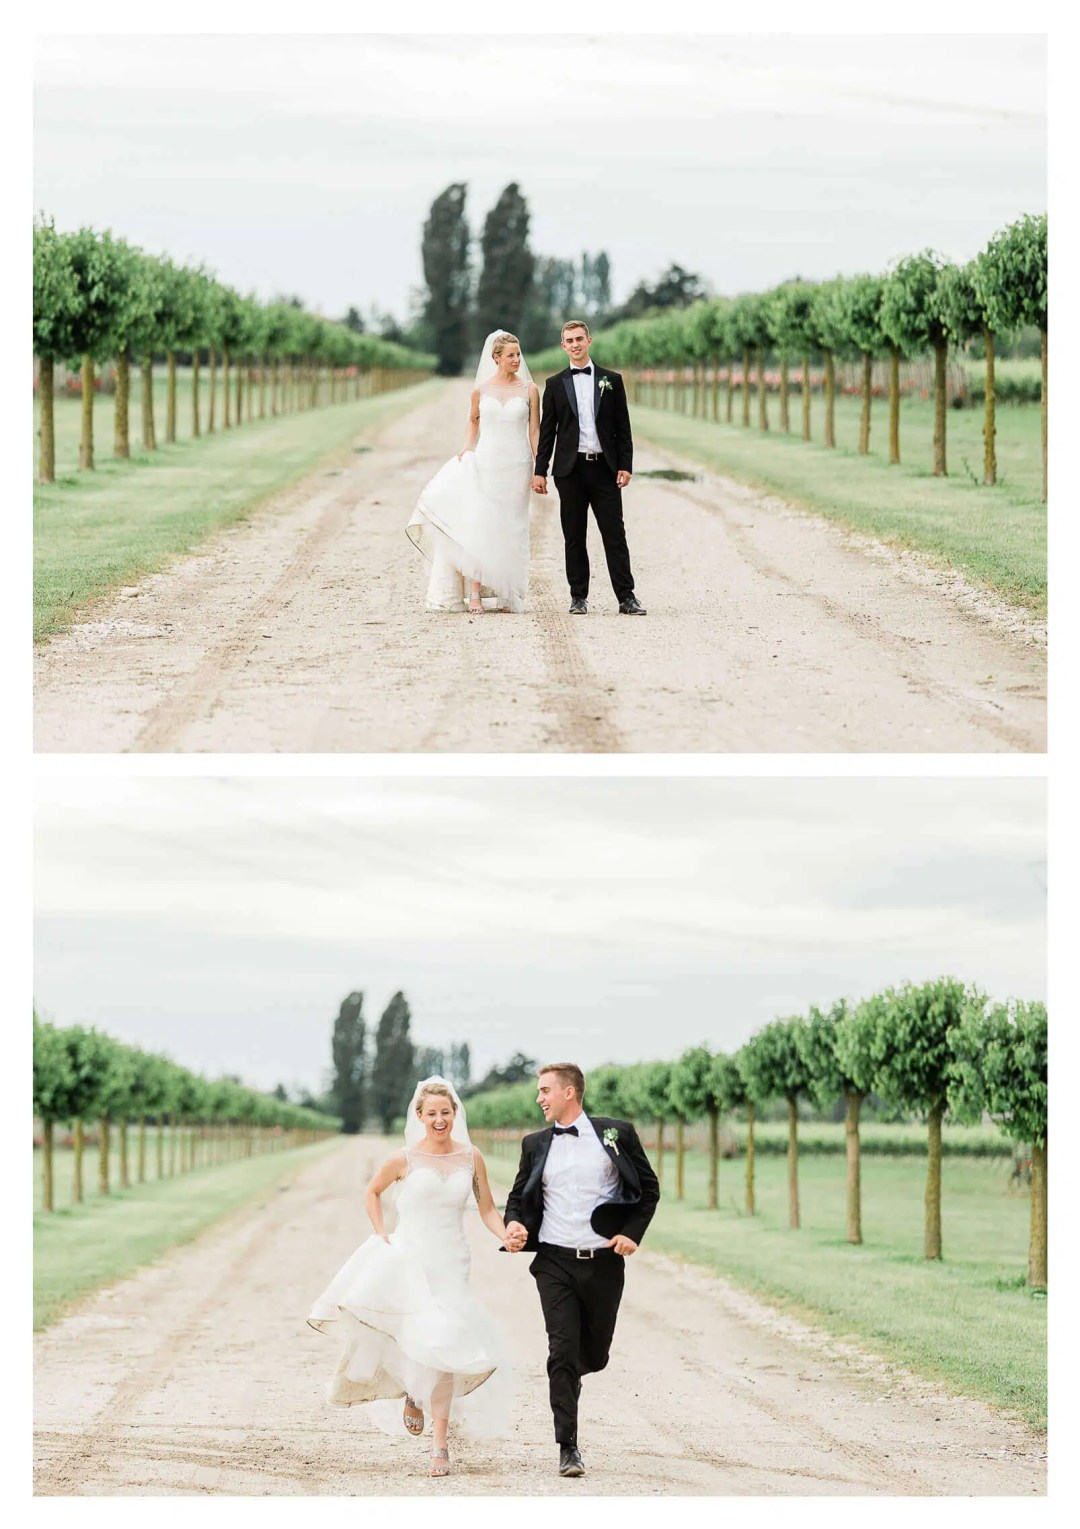 Wedding couple portraits of bride and groom running in vineyard | Destination wedding photographer